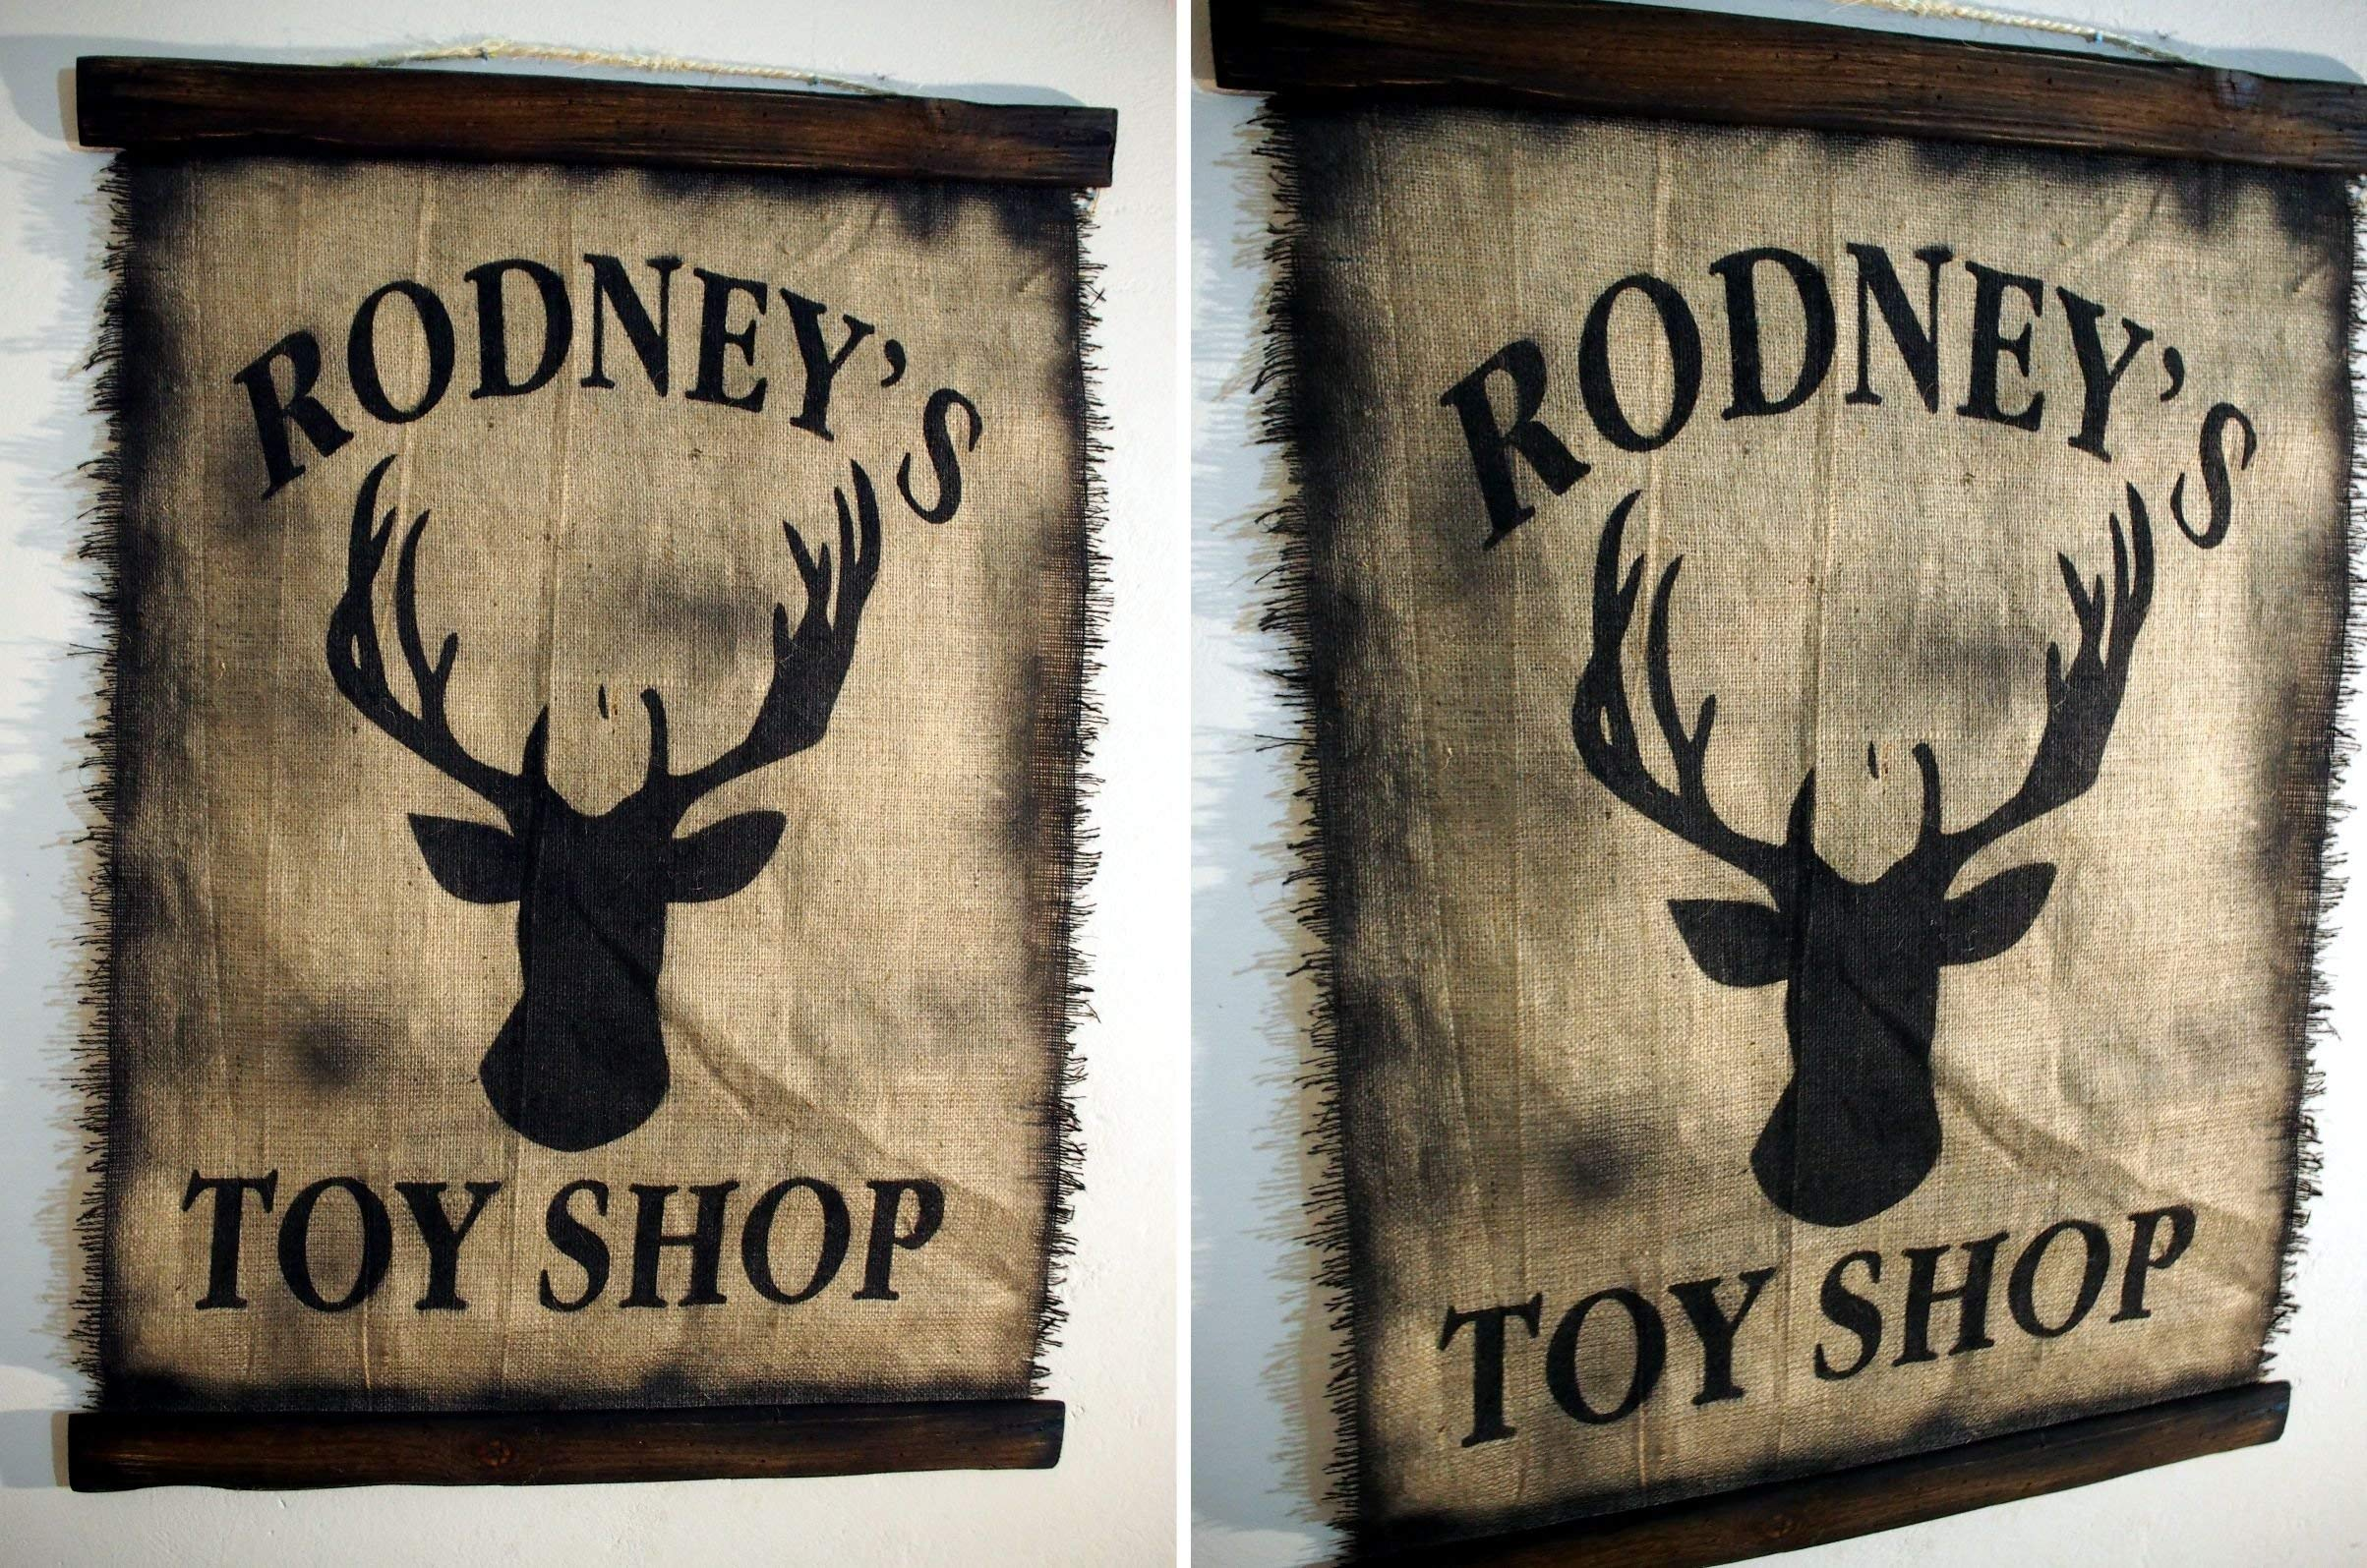 Custom Flag wall decor made of worn out burlap and wood | Rustic Decor | Pirate flag Wall art | Personalized Gift | Man Cave, Home Bar, Boys Room by Woodcraft City (Image #5)